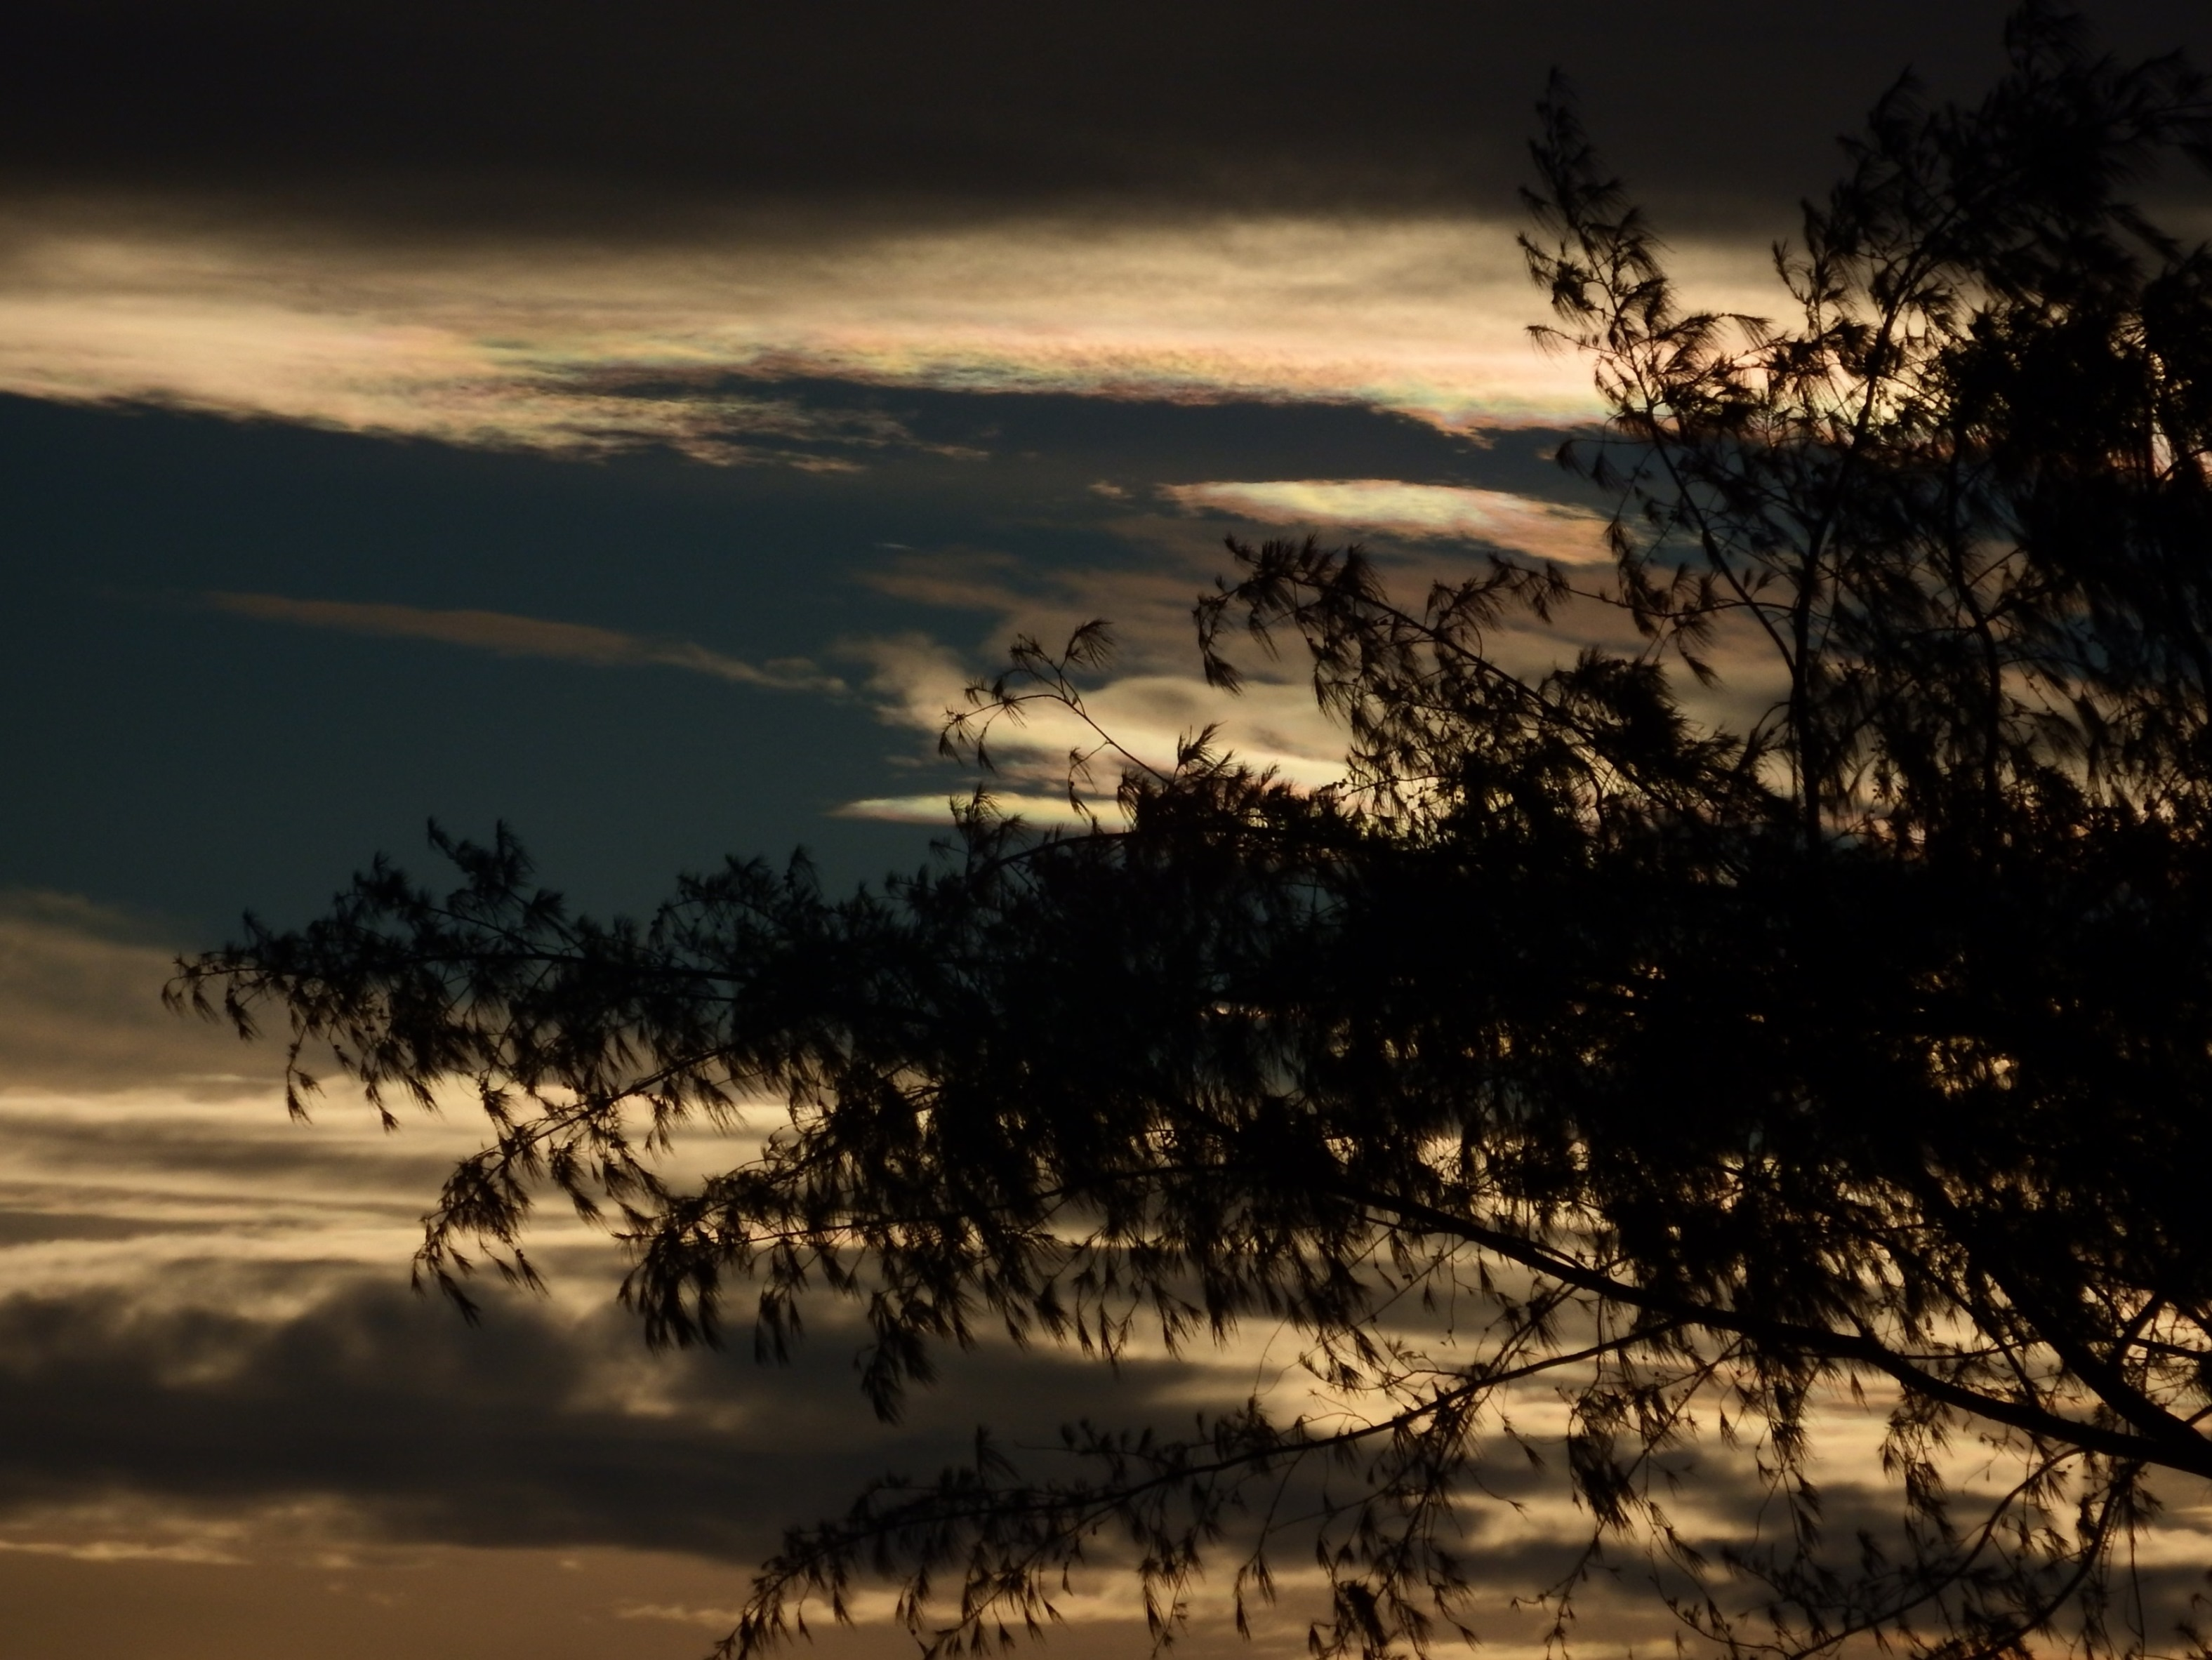 Dark Skies Silhouette, Black, Branches, Clouds, Cloudy, HQ Photo